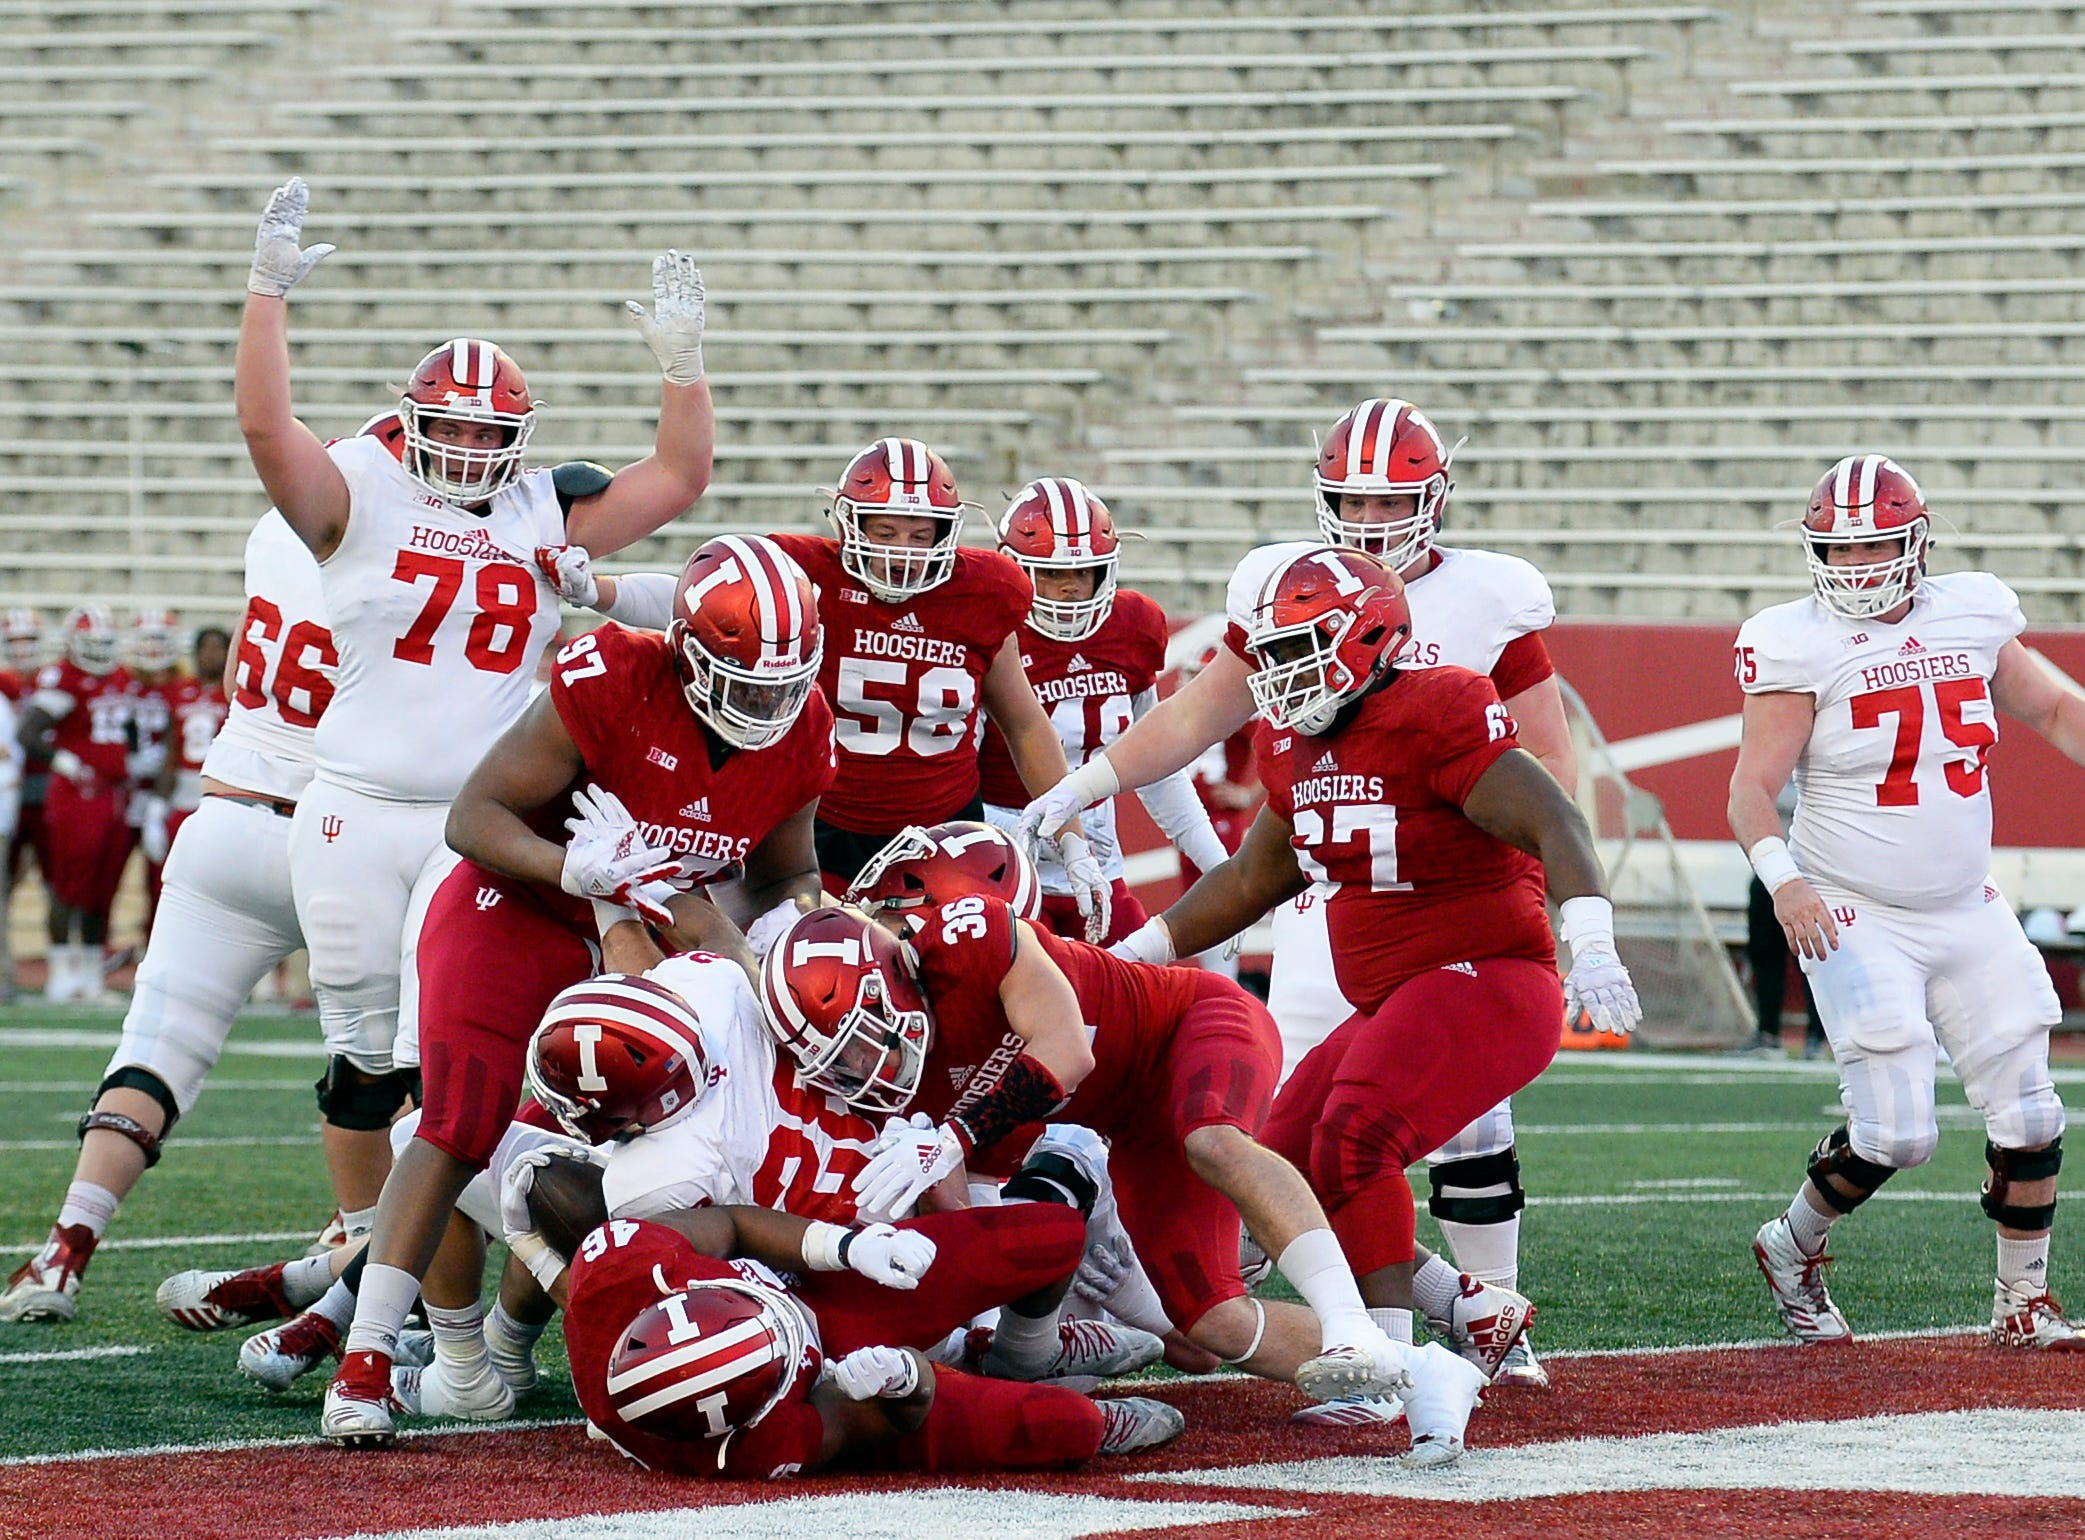 IU football spring game still leaves many questions unanswered